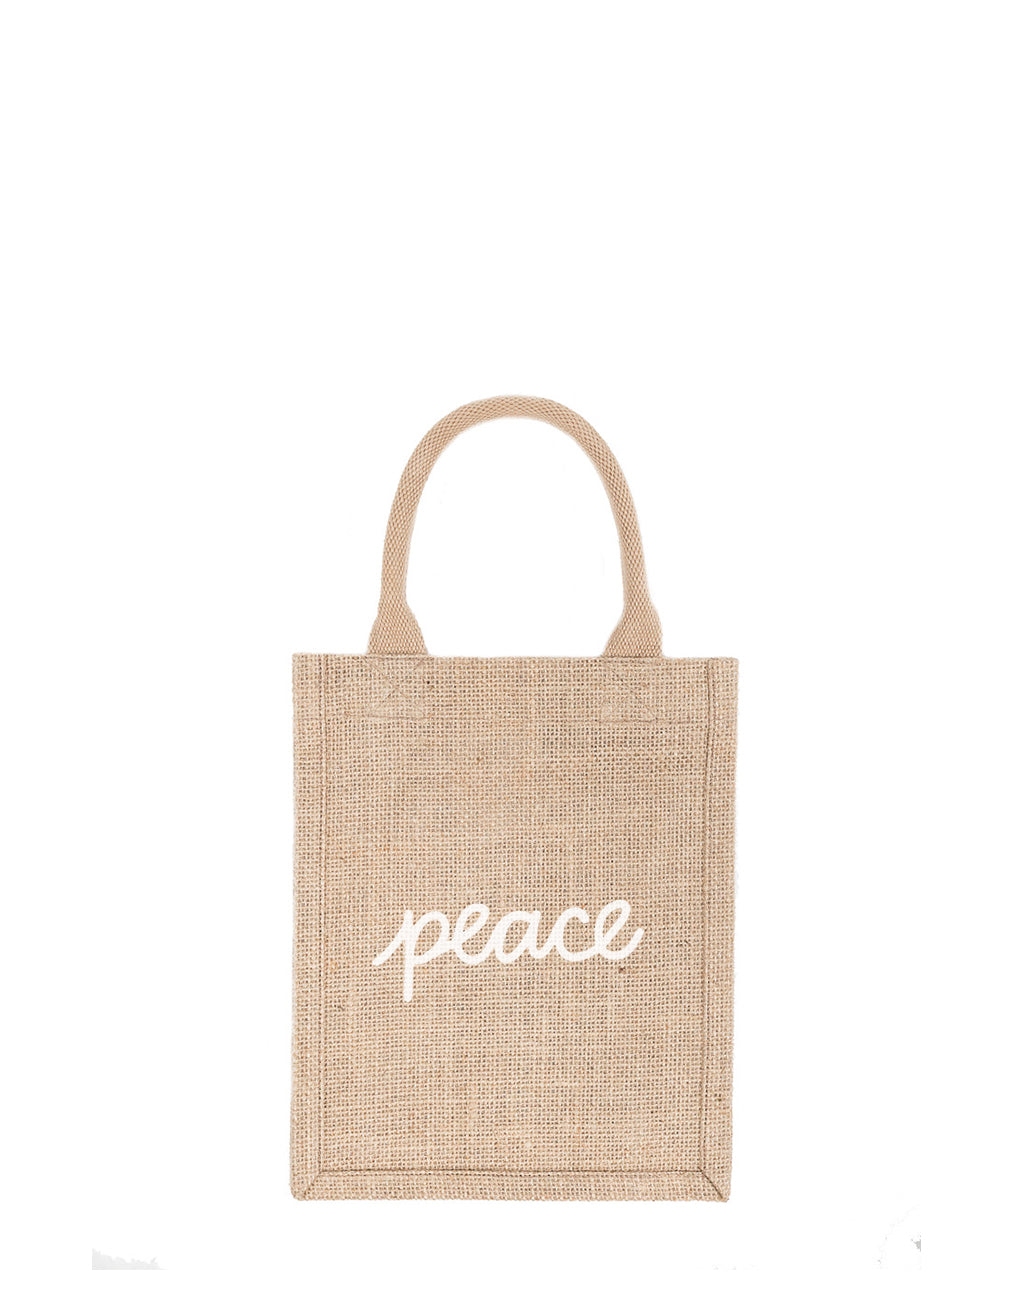 Small Peace Reusable Gift Tote In White Font | The Little Market